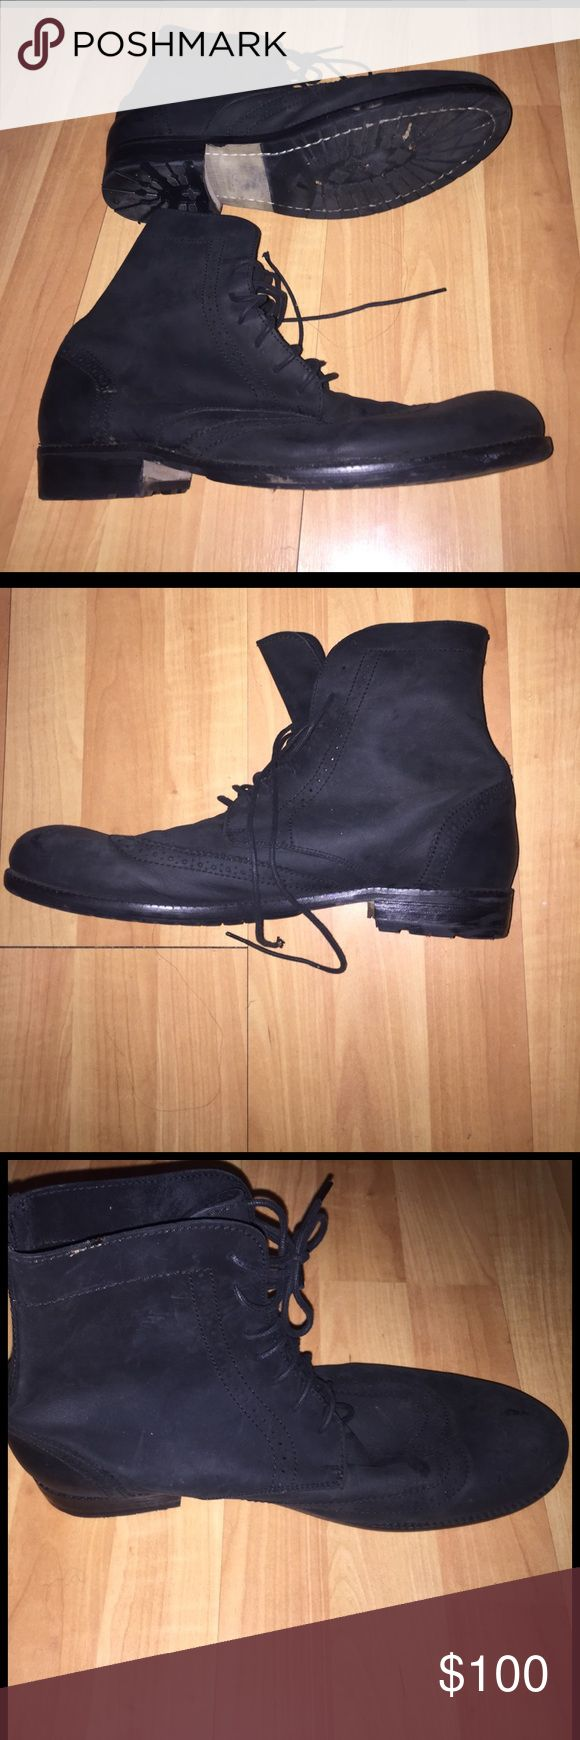 Ben Sherman Suede Black high men's boots for sale Suede Ben Sherman lace up wingtip boots Ben Sherman Shoes Boots